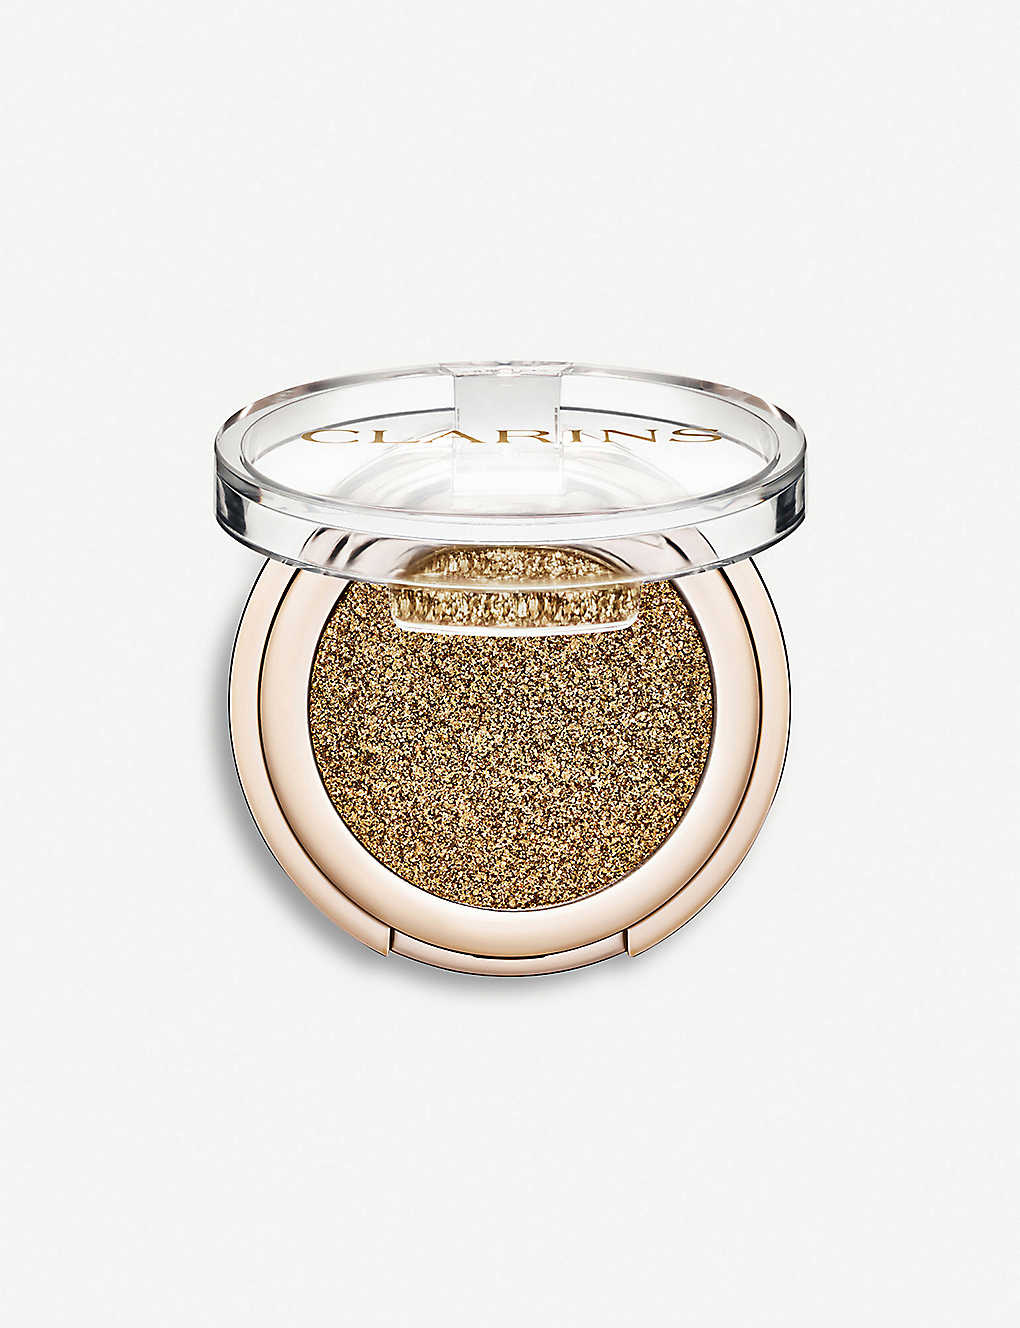 CLARINS: Ombre Sparkle eyeshadow 1.5g